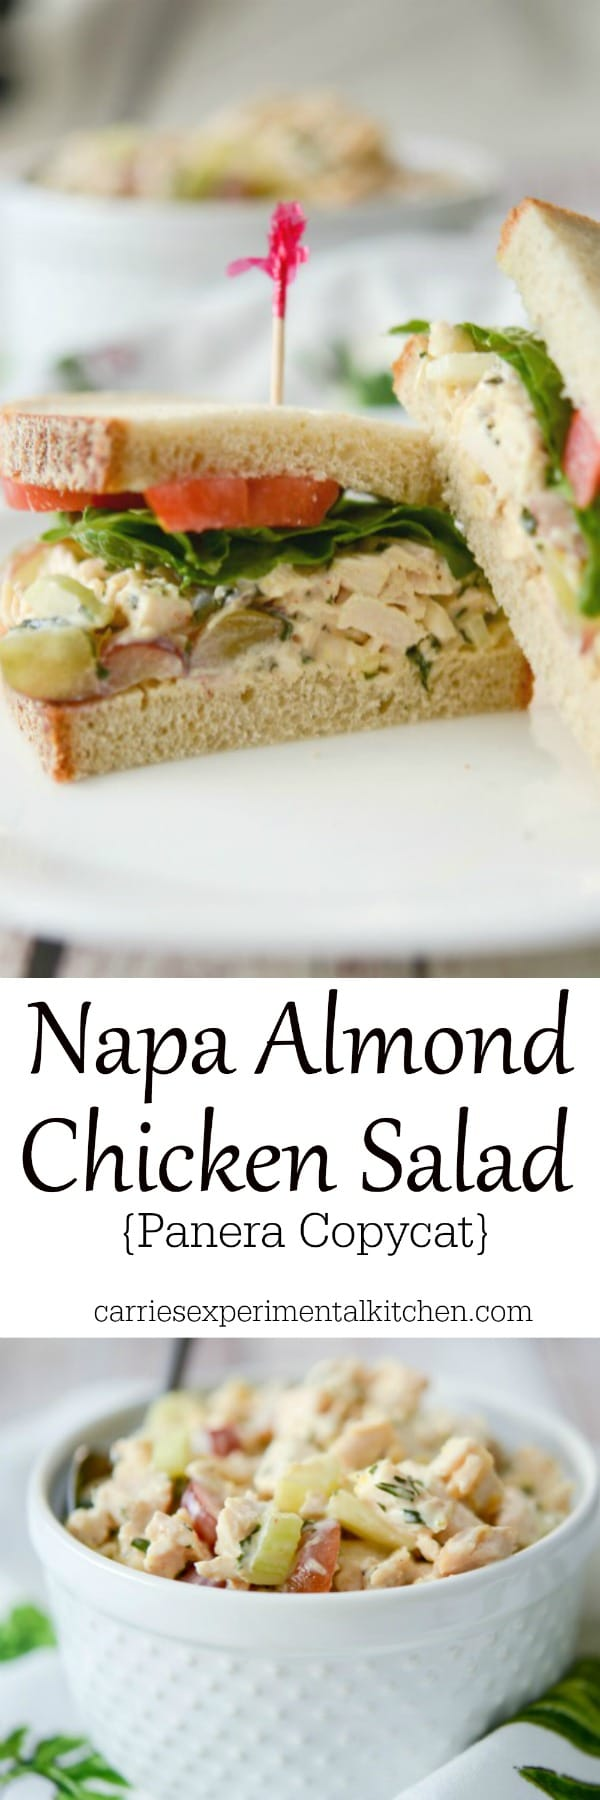 This Panera Bread copycat recipe for Napa Almond Chicken Salad made with tender white meat chicken, silvered almonds and grapes in a honey lemon herb mayonnaise makes a tasty sandwich for lunch or dinner. #chicken #sandwich #salad #copycatrecipe